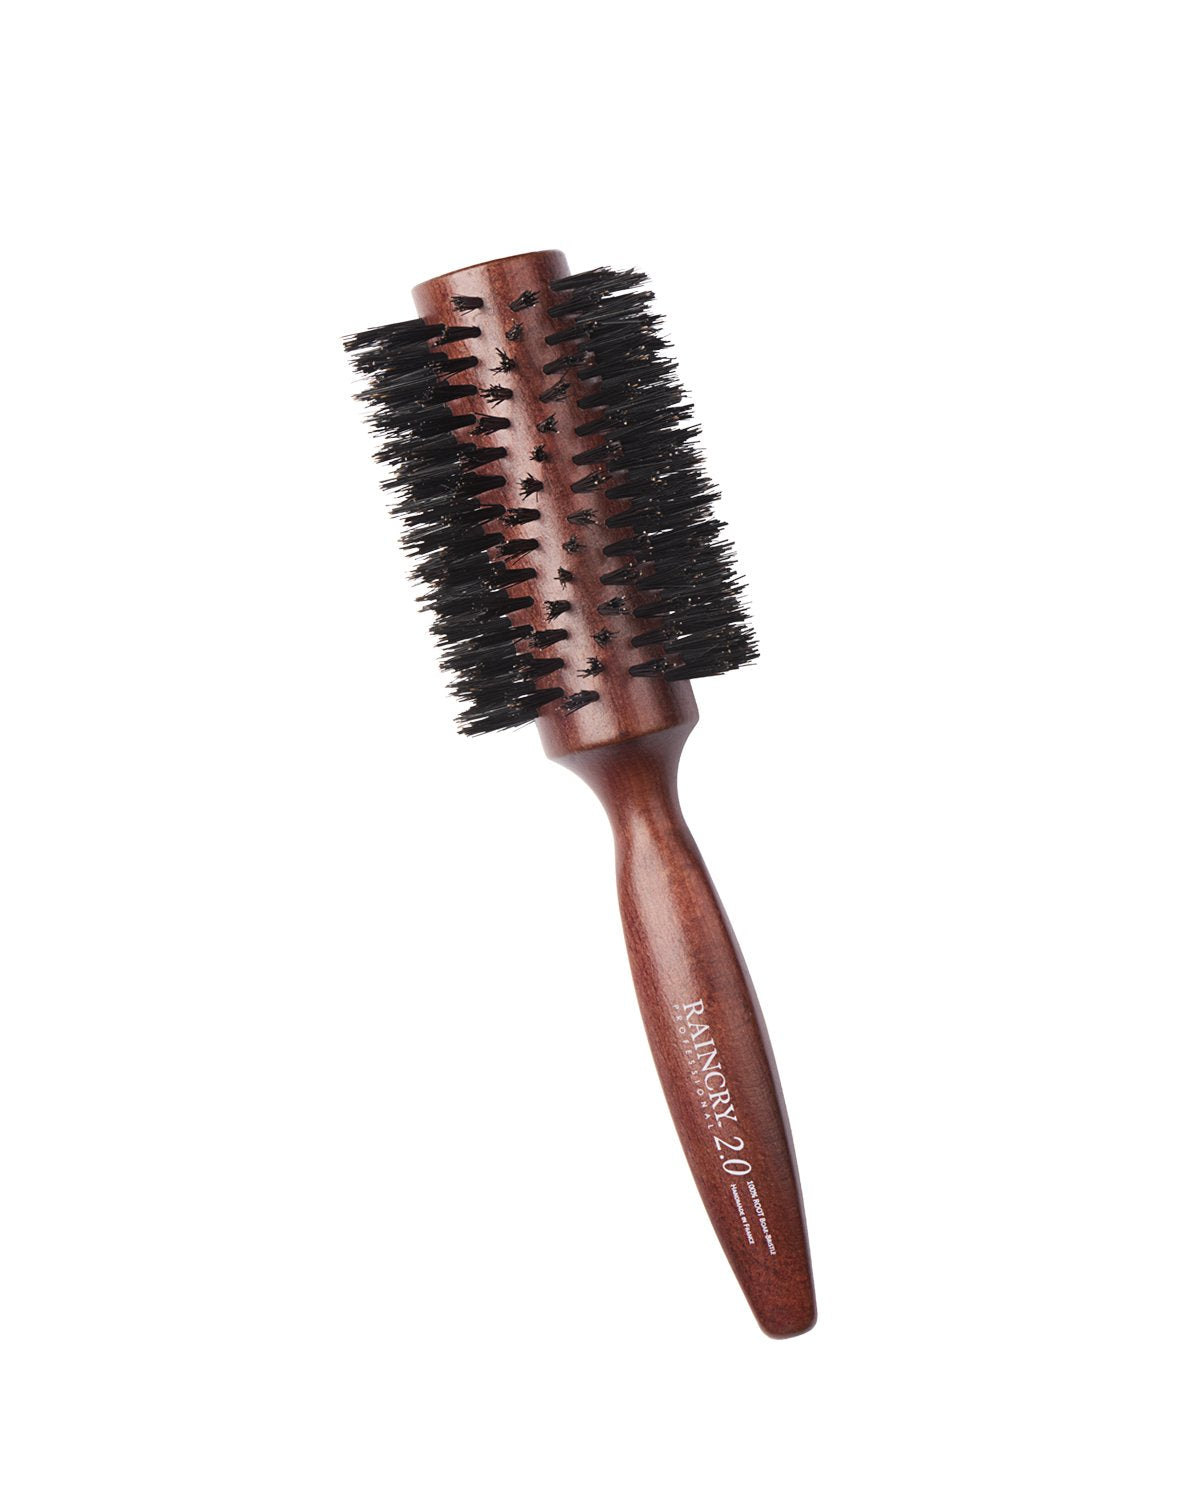 RAINCRY PURE Boar Bristle Smoothing Brush plus